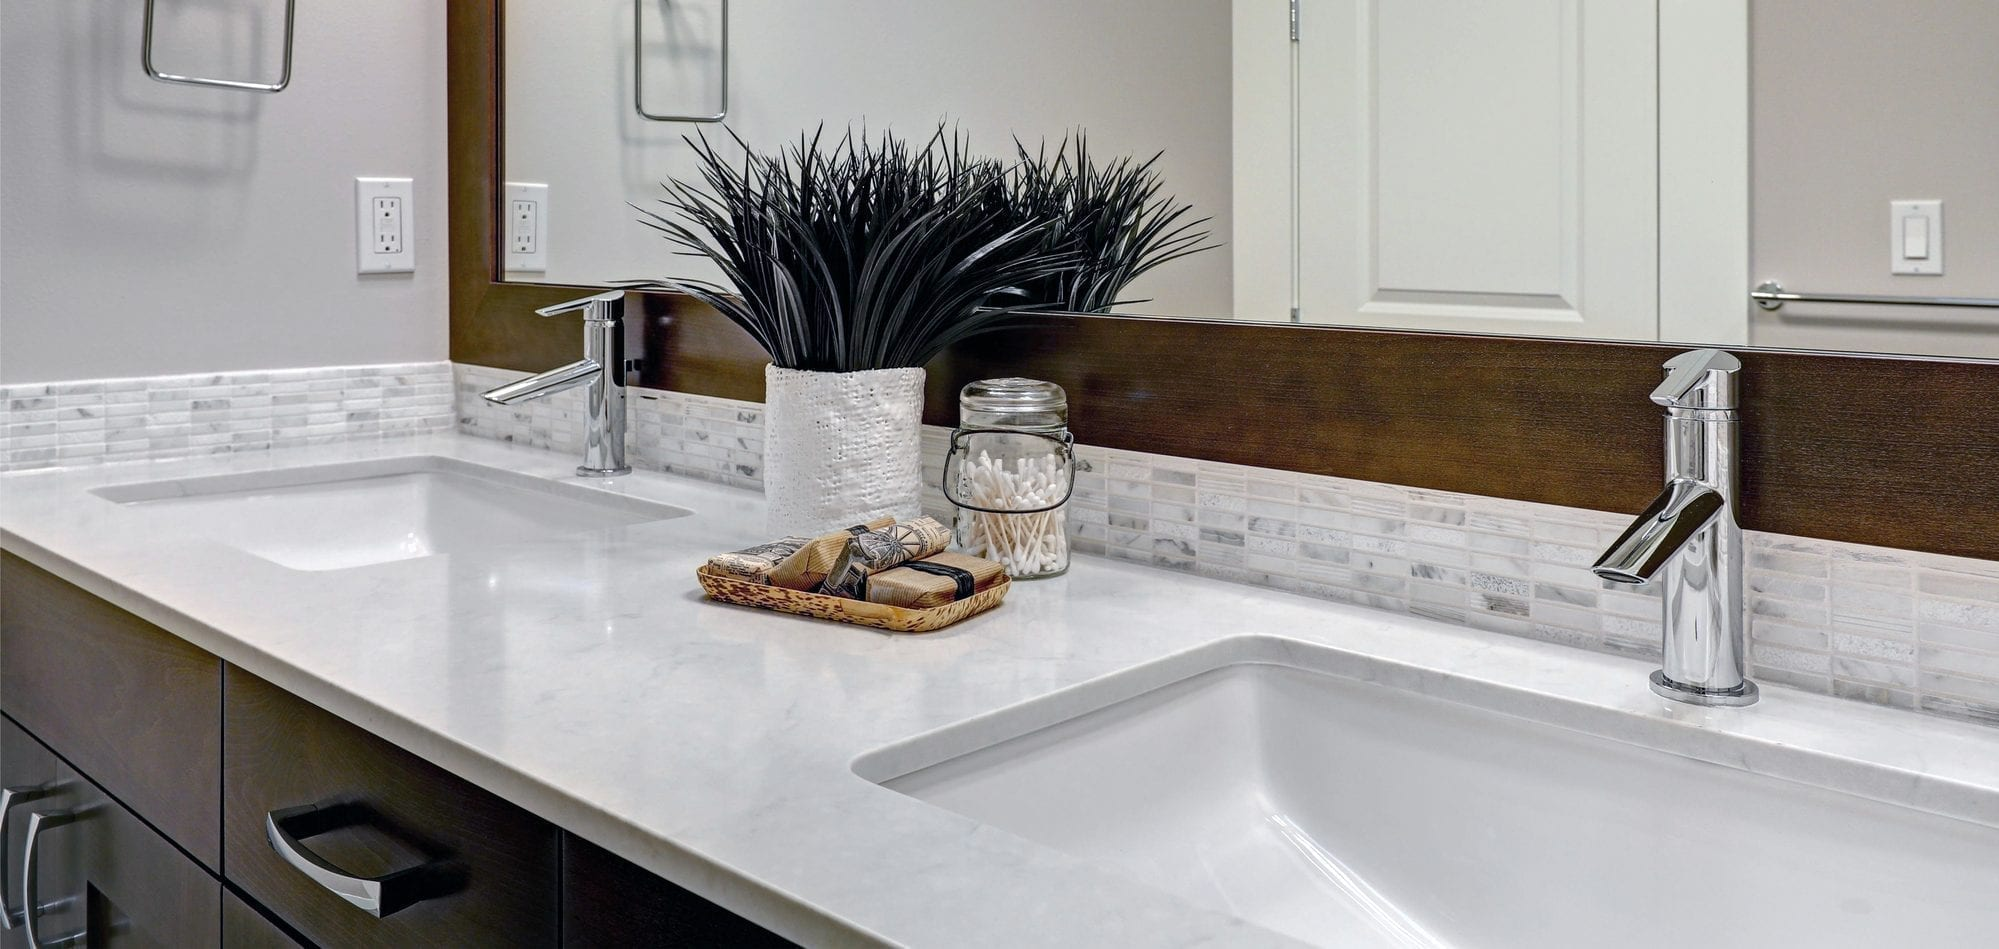 White and brown bathroom boasts a nook filled with double sink bathroom vanity cabinet topped with white and grey counter paired with tile backsplash under framed mirror.